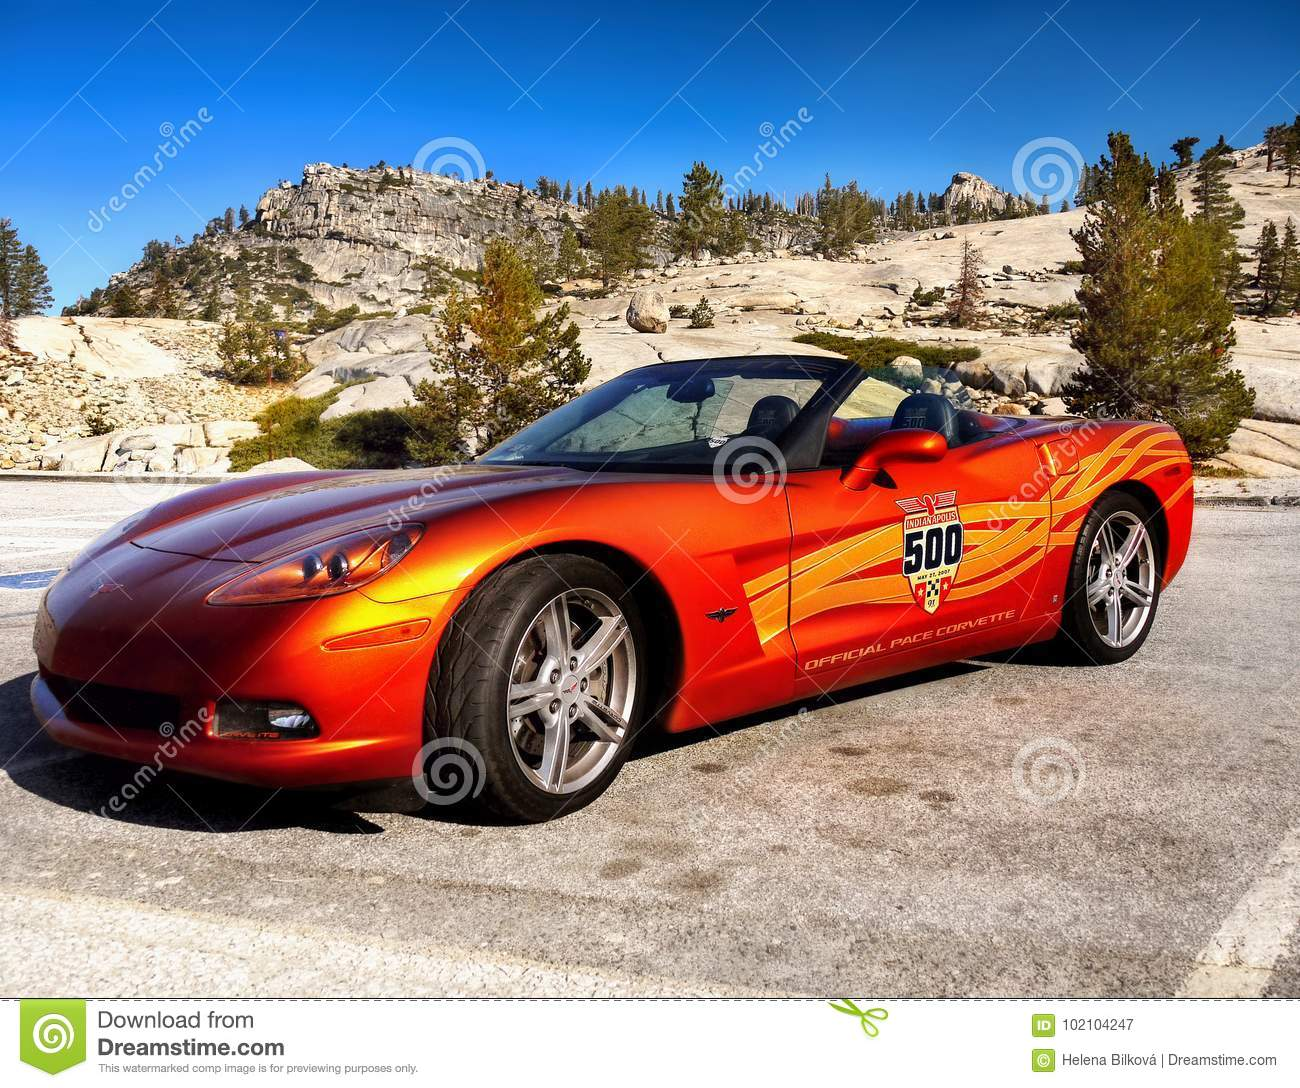 Chevrolet Corvette Sports Car Editorial Photography